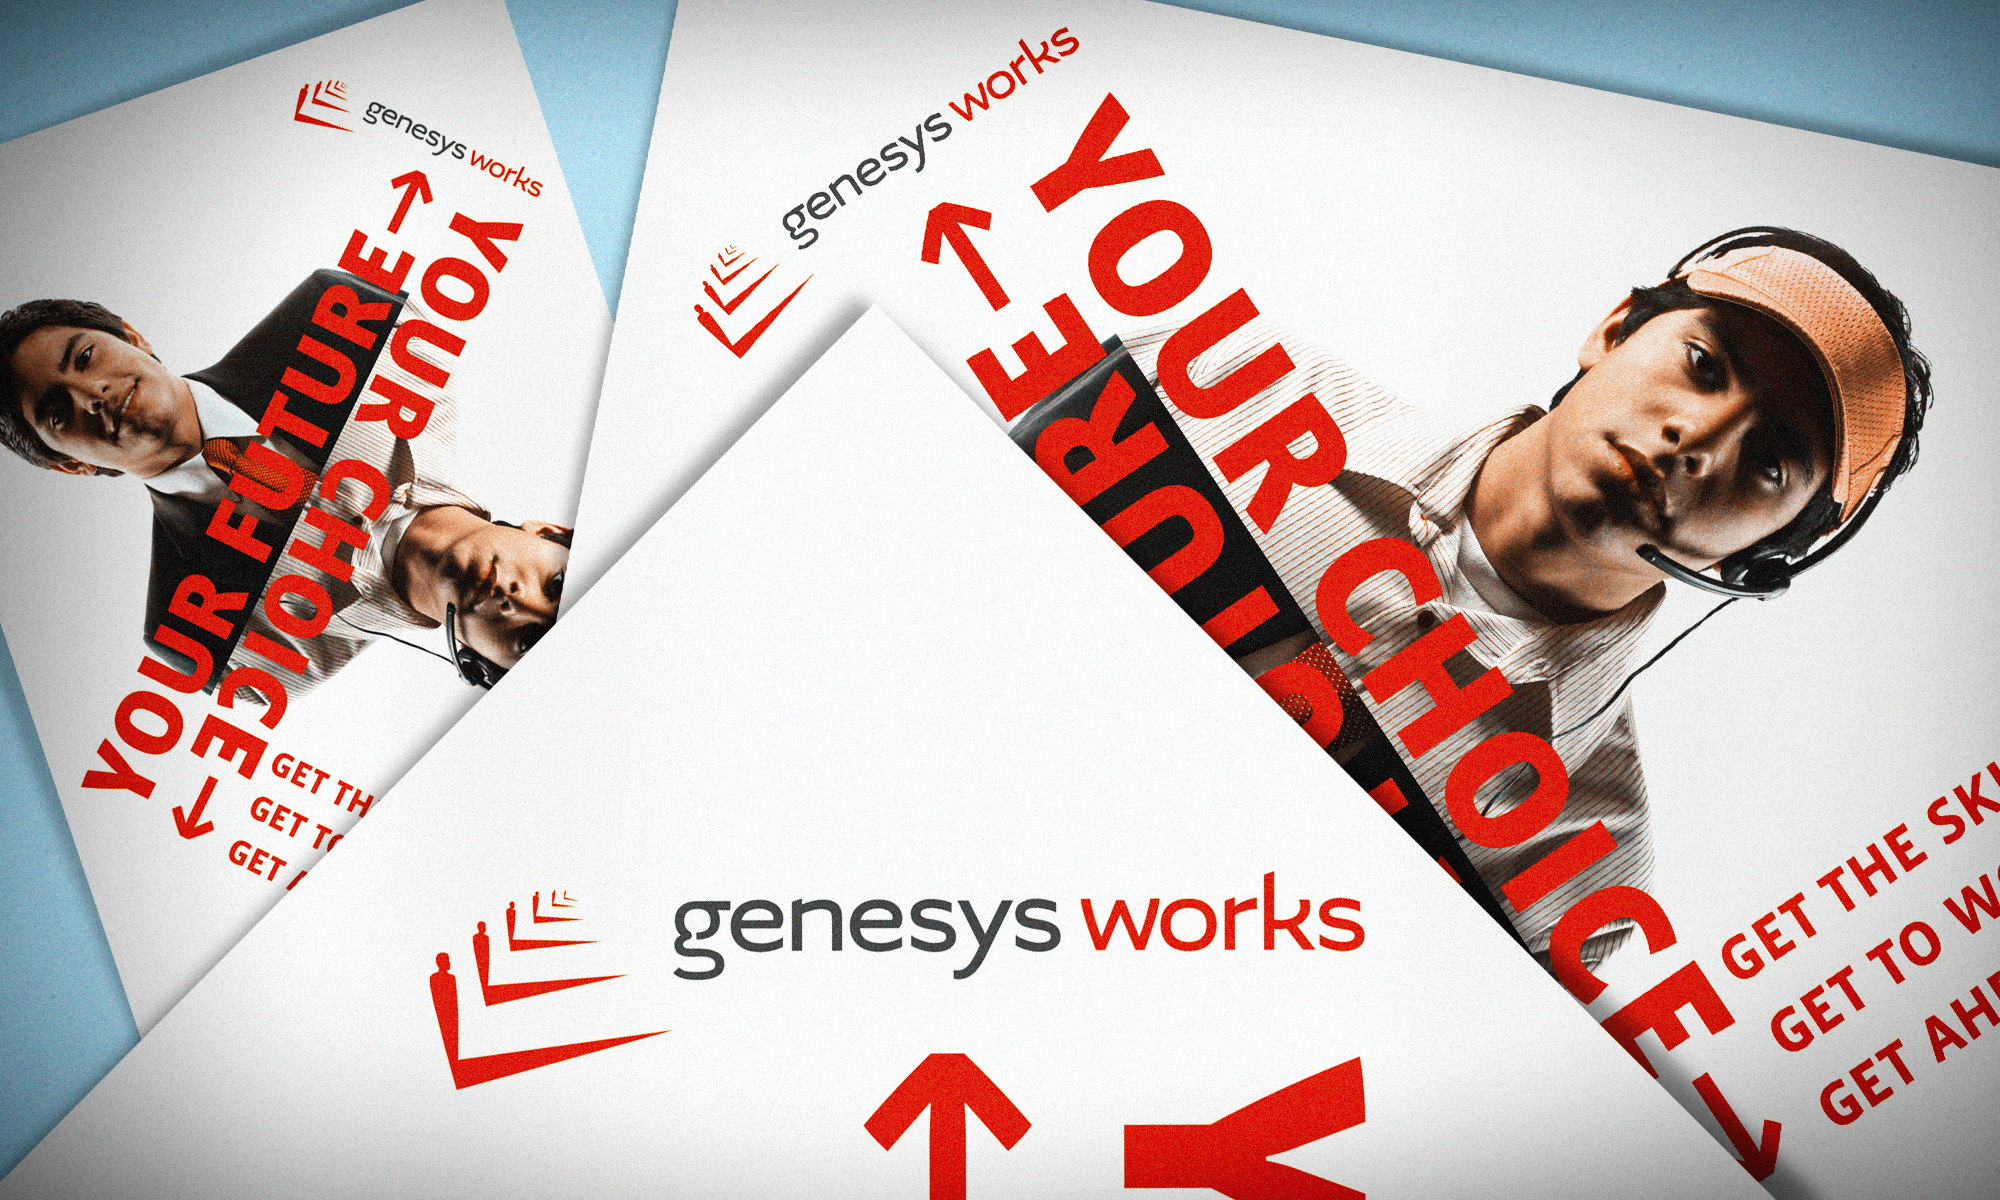 Genesys Works Print Material